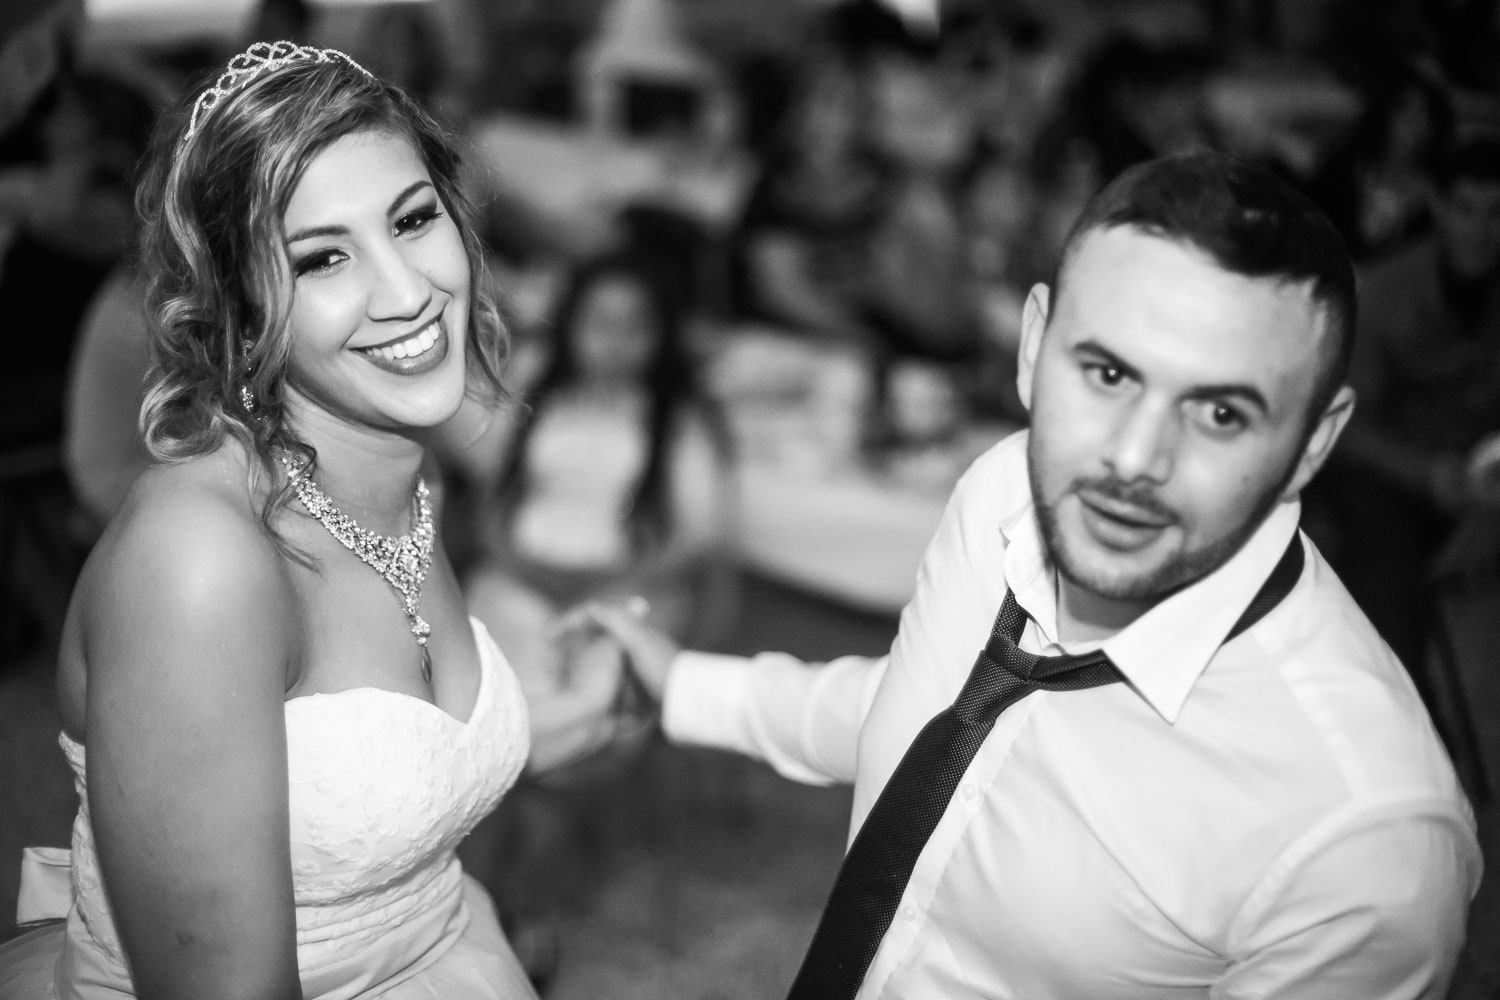 photographe mariage montpellier hd21